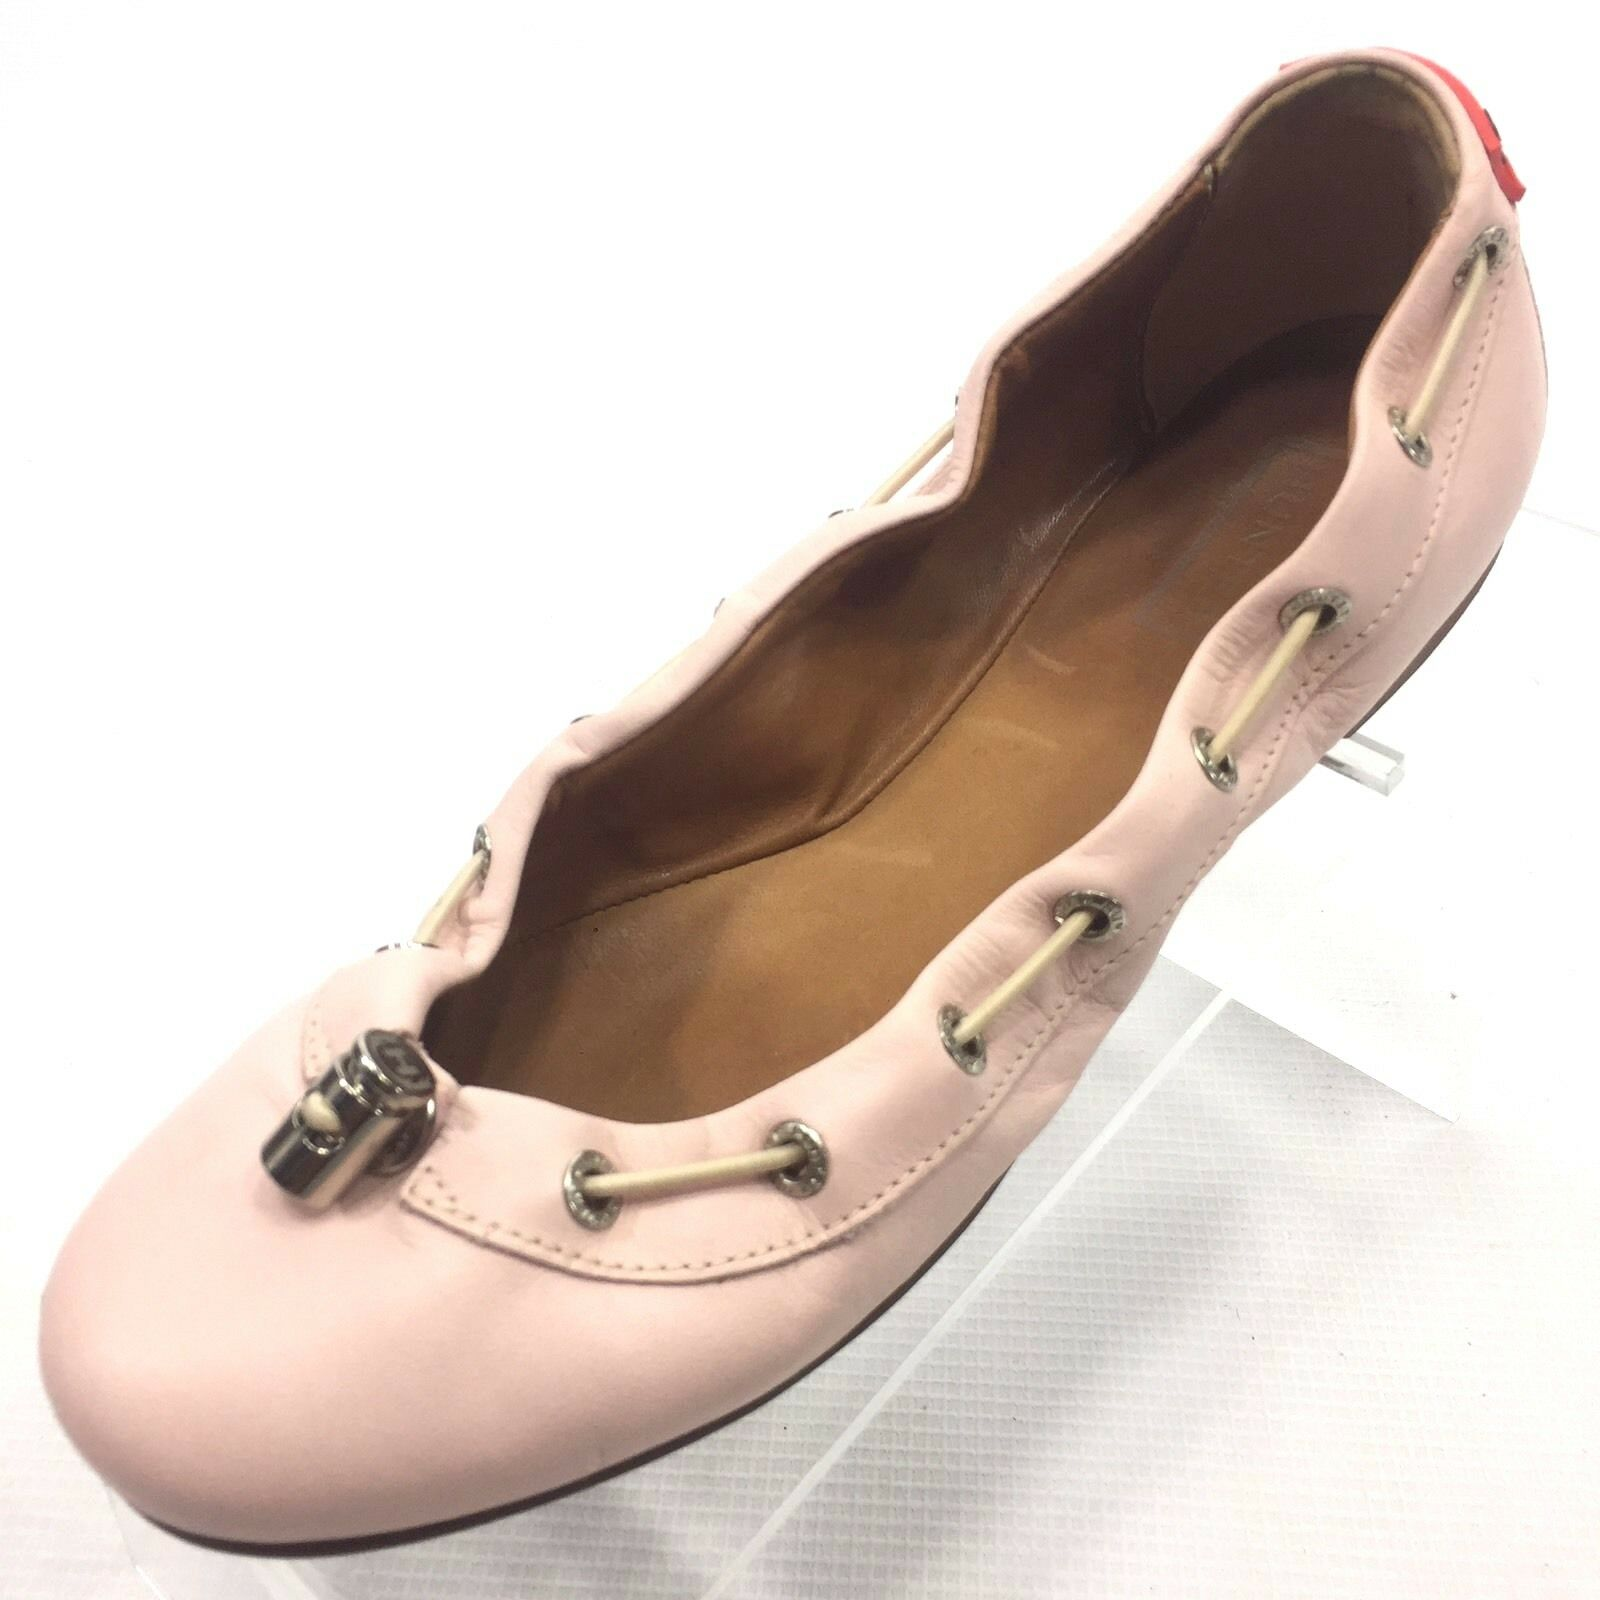 HUNTER Women's Solid Pink Leather Flats 360 Pull Tie Size 6